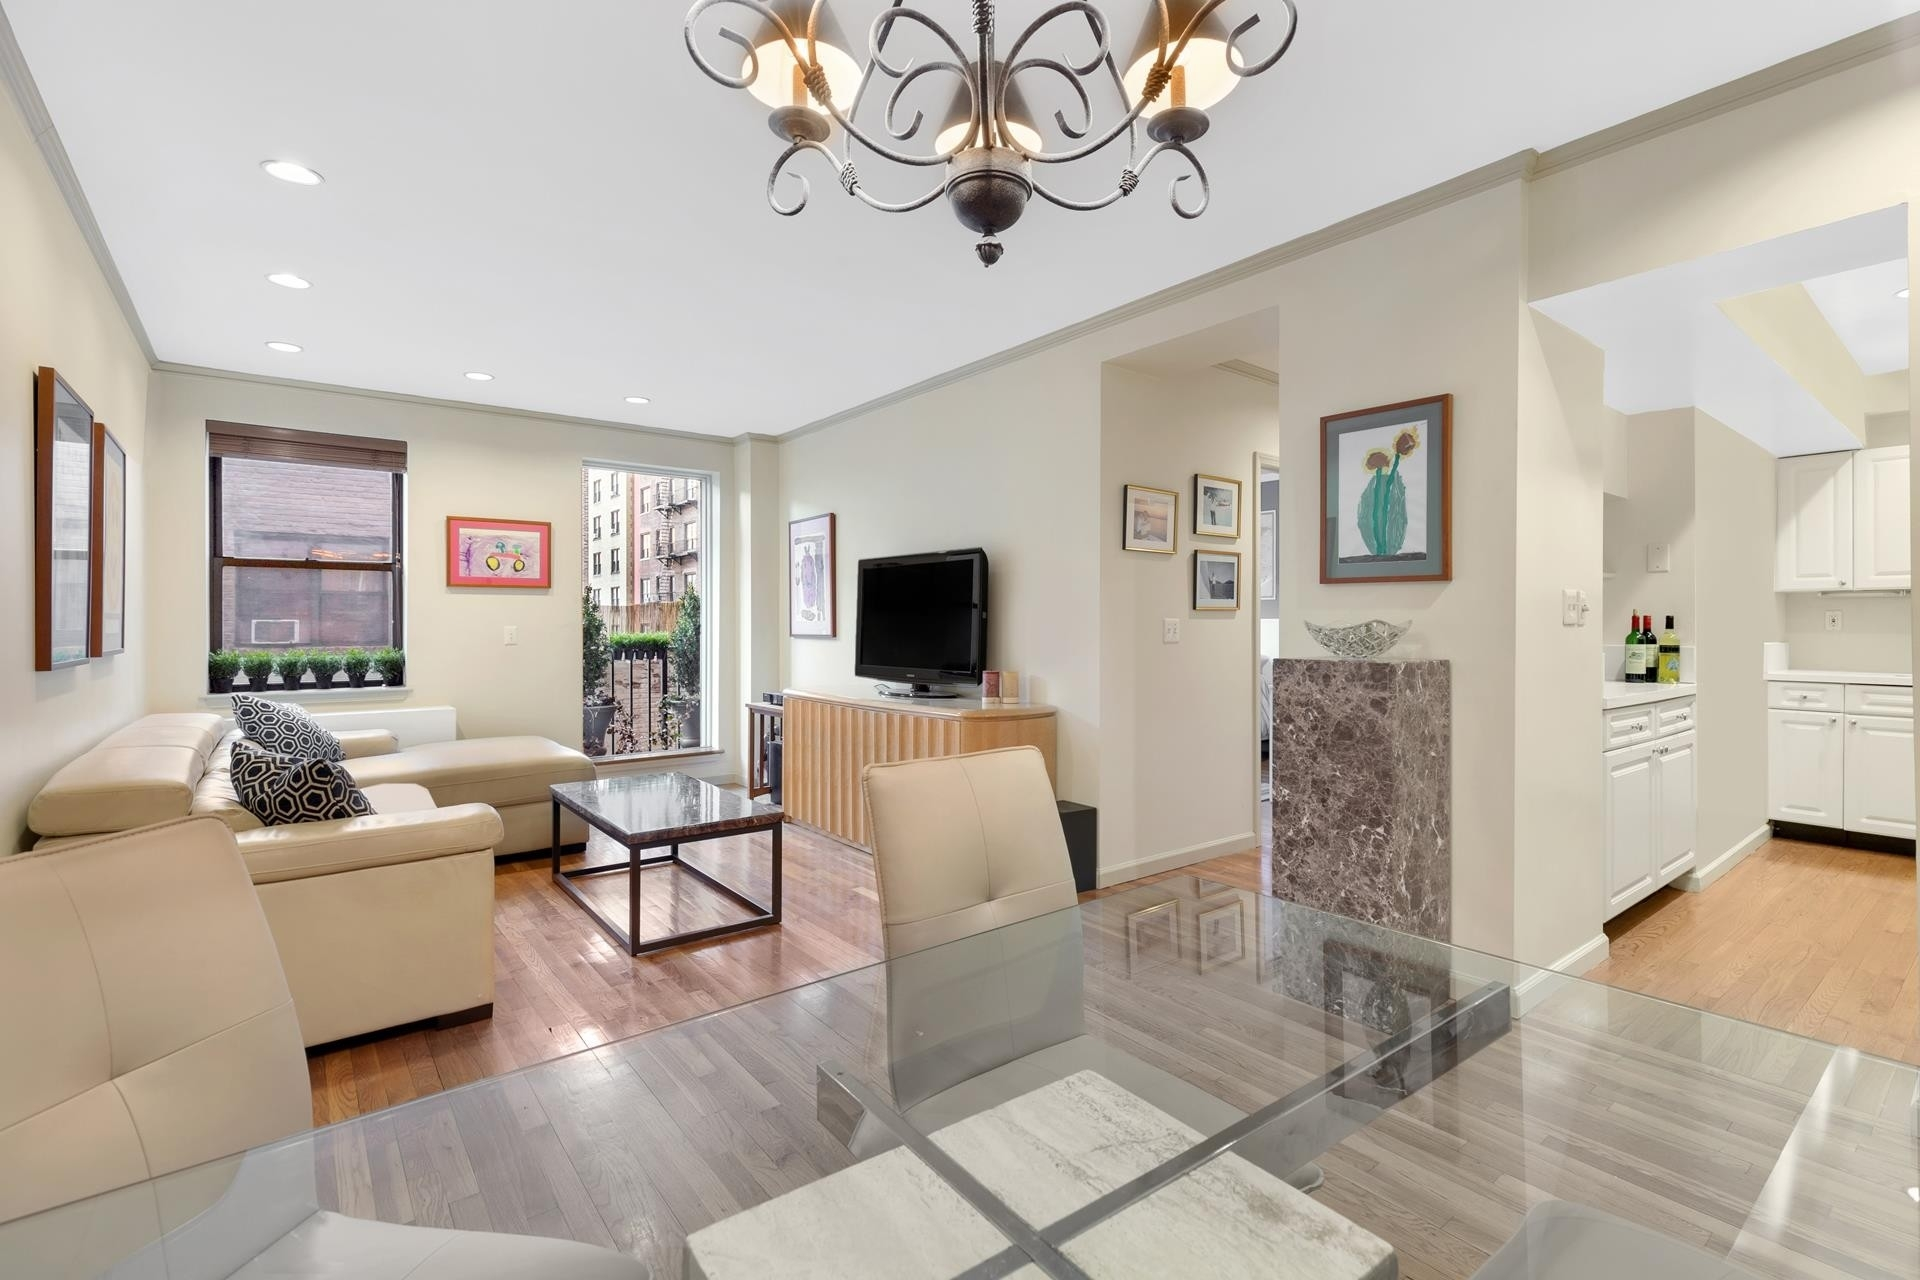 Property à THE CHESTERFIELD, 186 W 80TH ST , 6B Upper West Side, New York, NY 10024